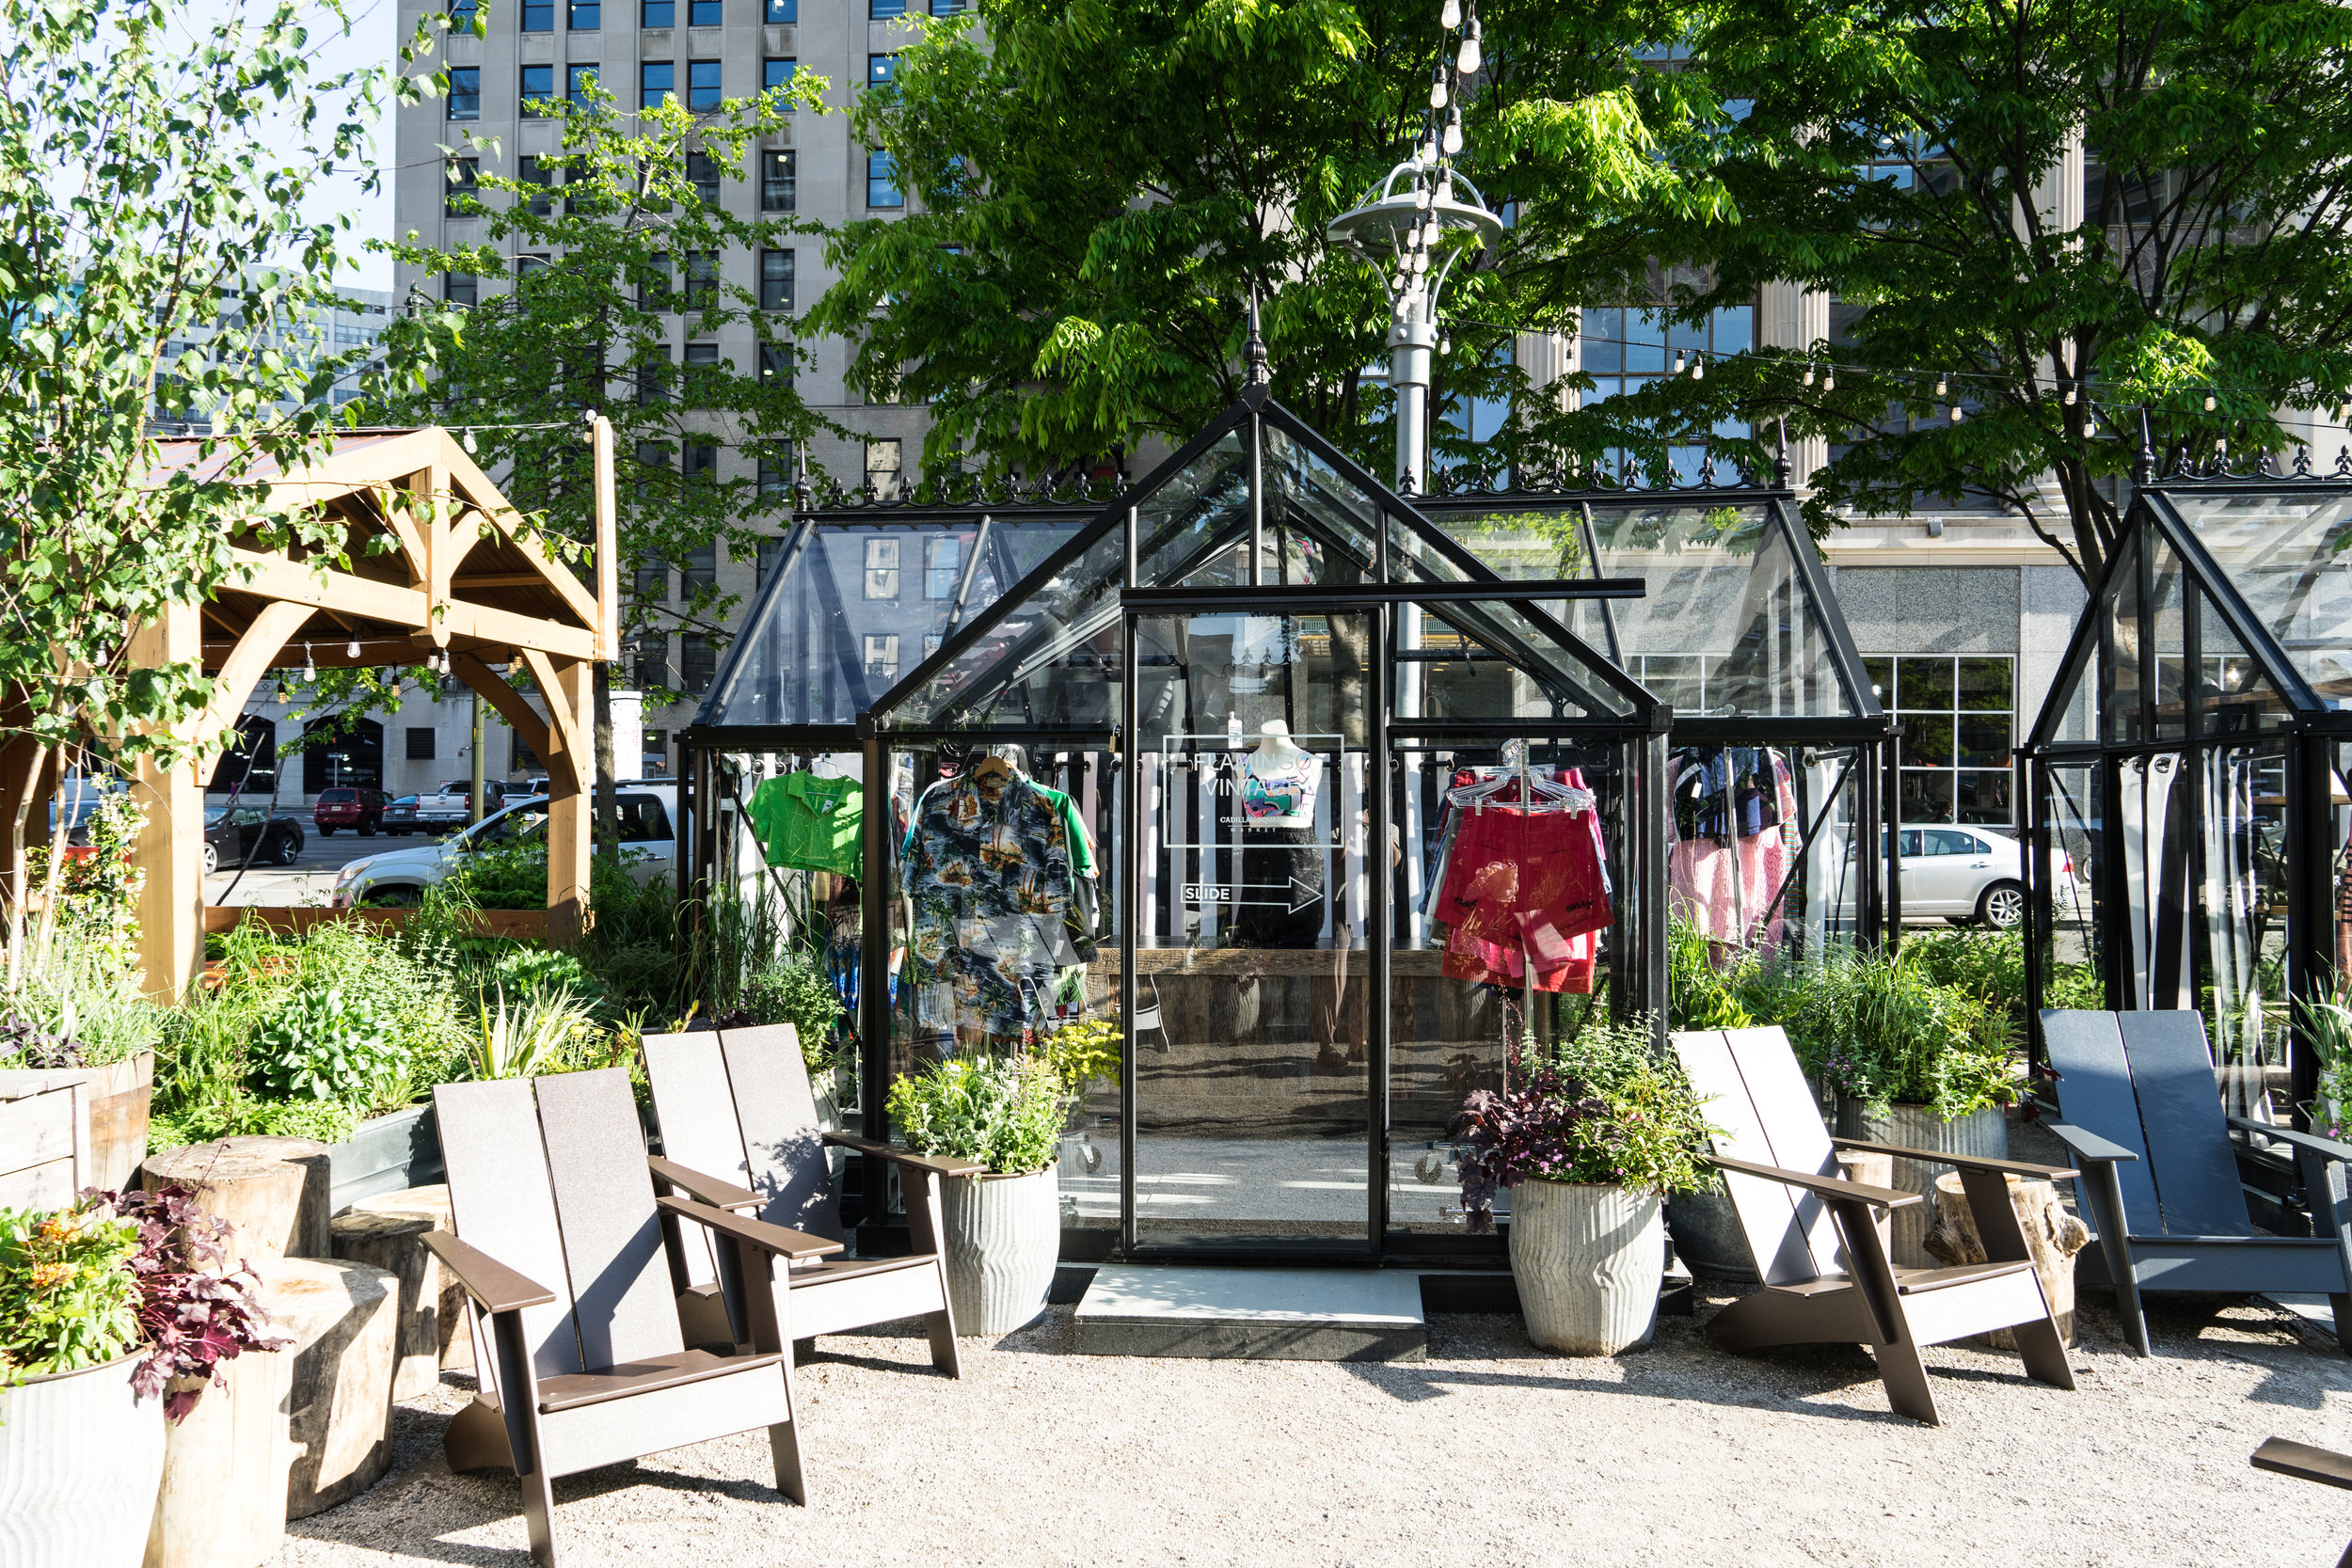 Glass pods throughout Cadillac Square & Capitol Park with local vendors